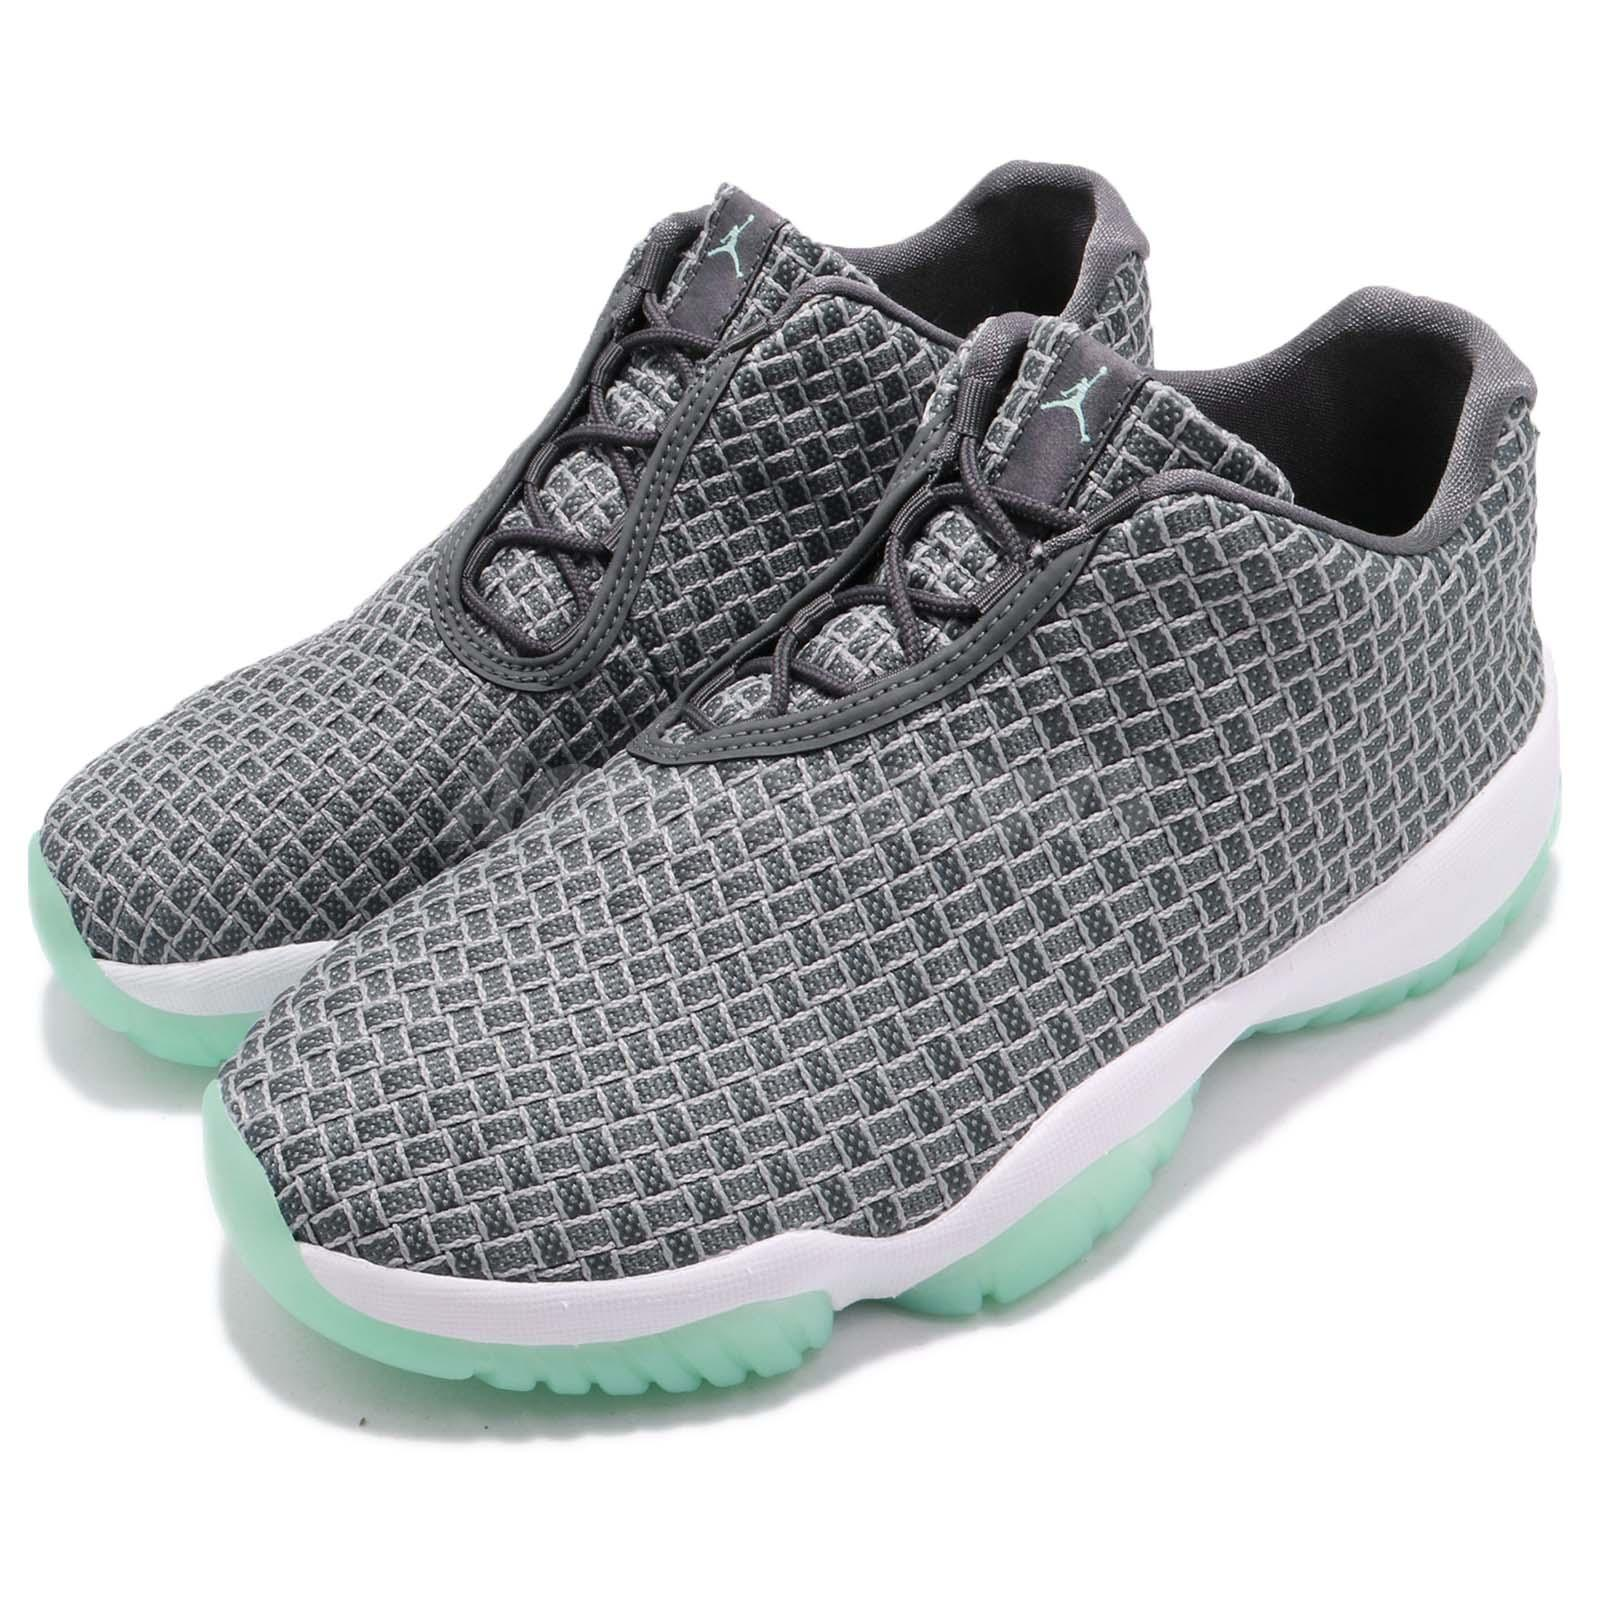 the best attitude 88264 c6b4a Details about Nike Air Jordan Future Low Wolf Grey Emerald Rise Men  Lifestyle Shoes 718948-006